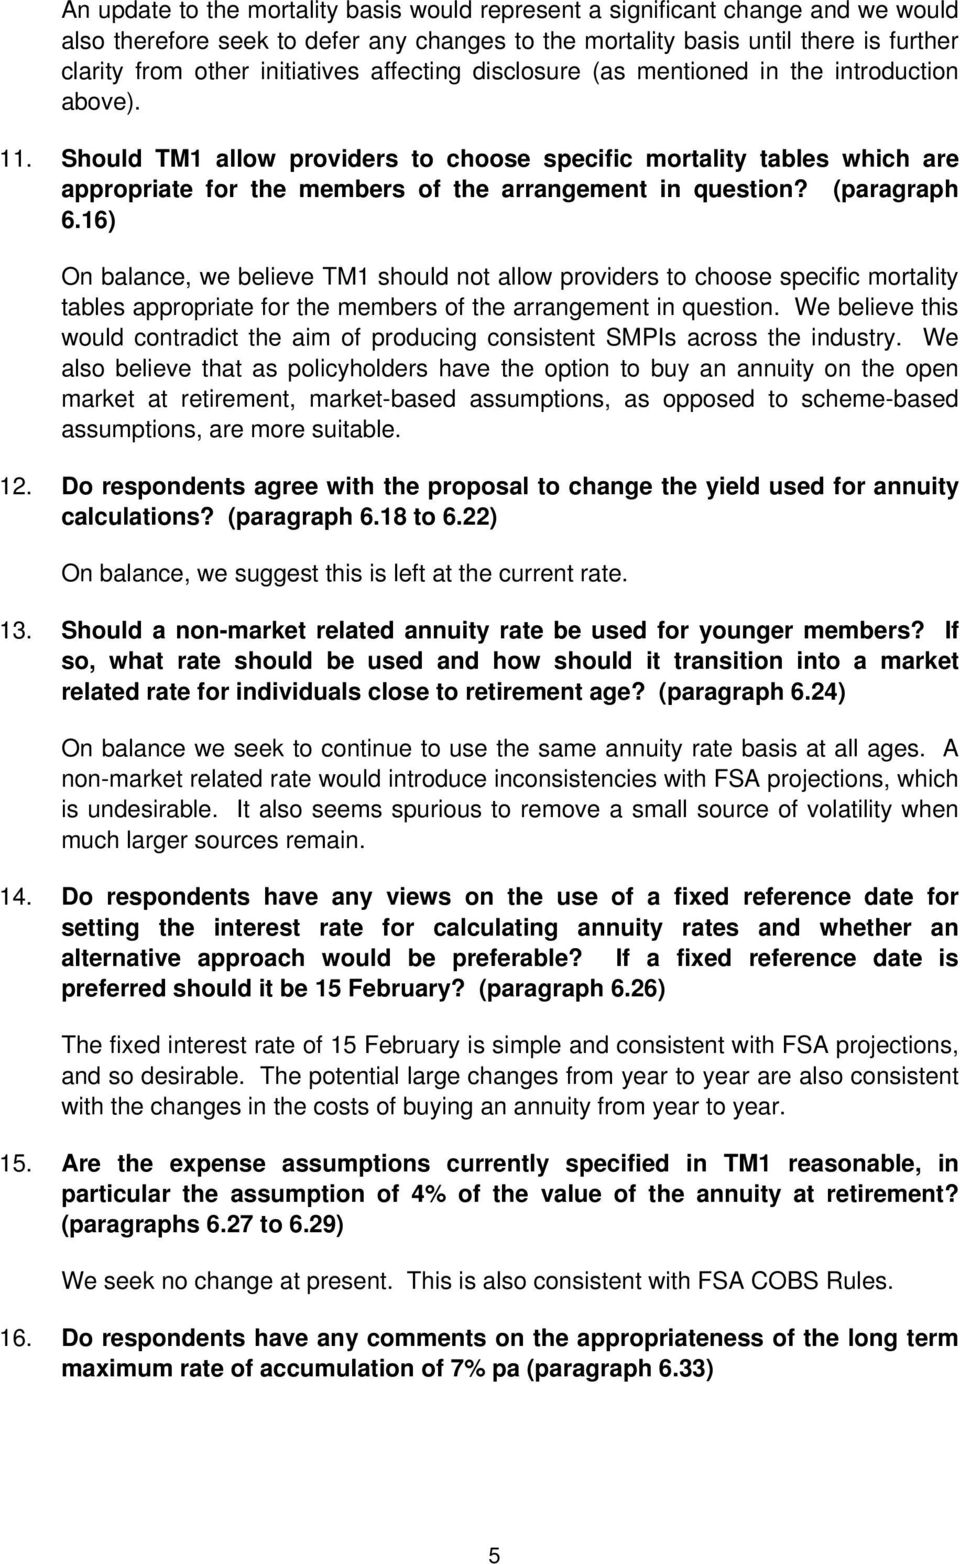 Should TM1 allow providers to choose specific mortality tables which are appropriate for the members of the arrangement in question? (paragraph 6.